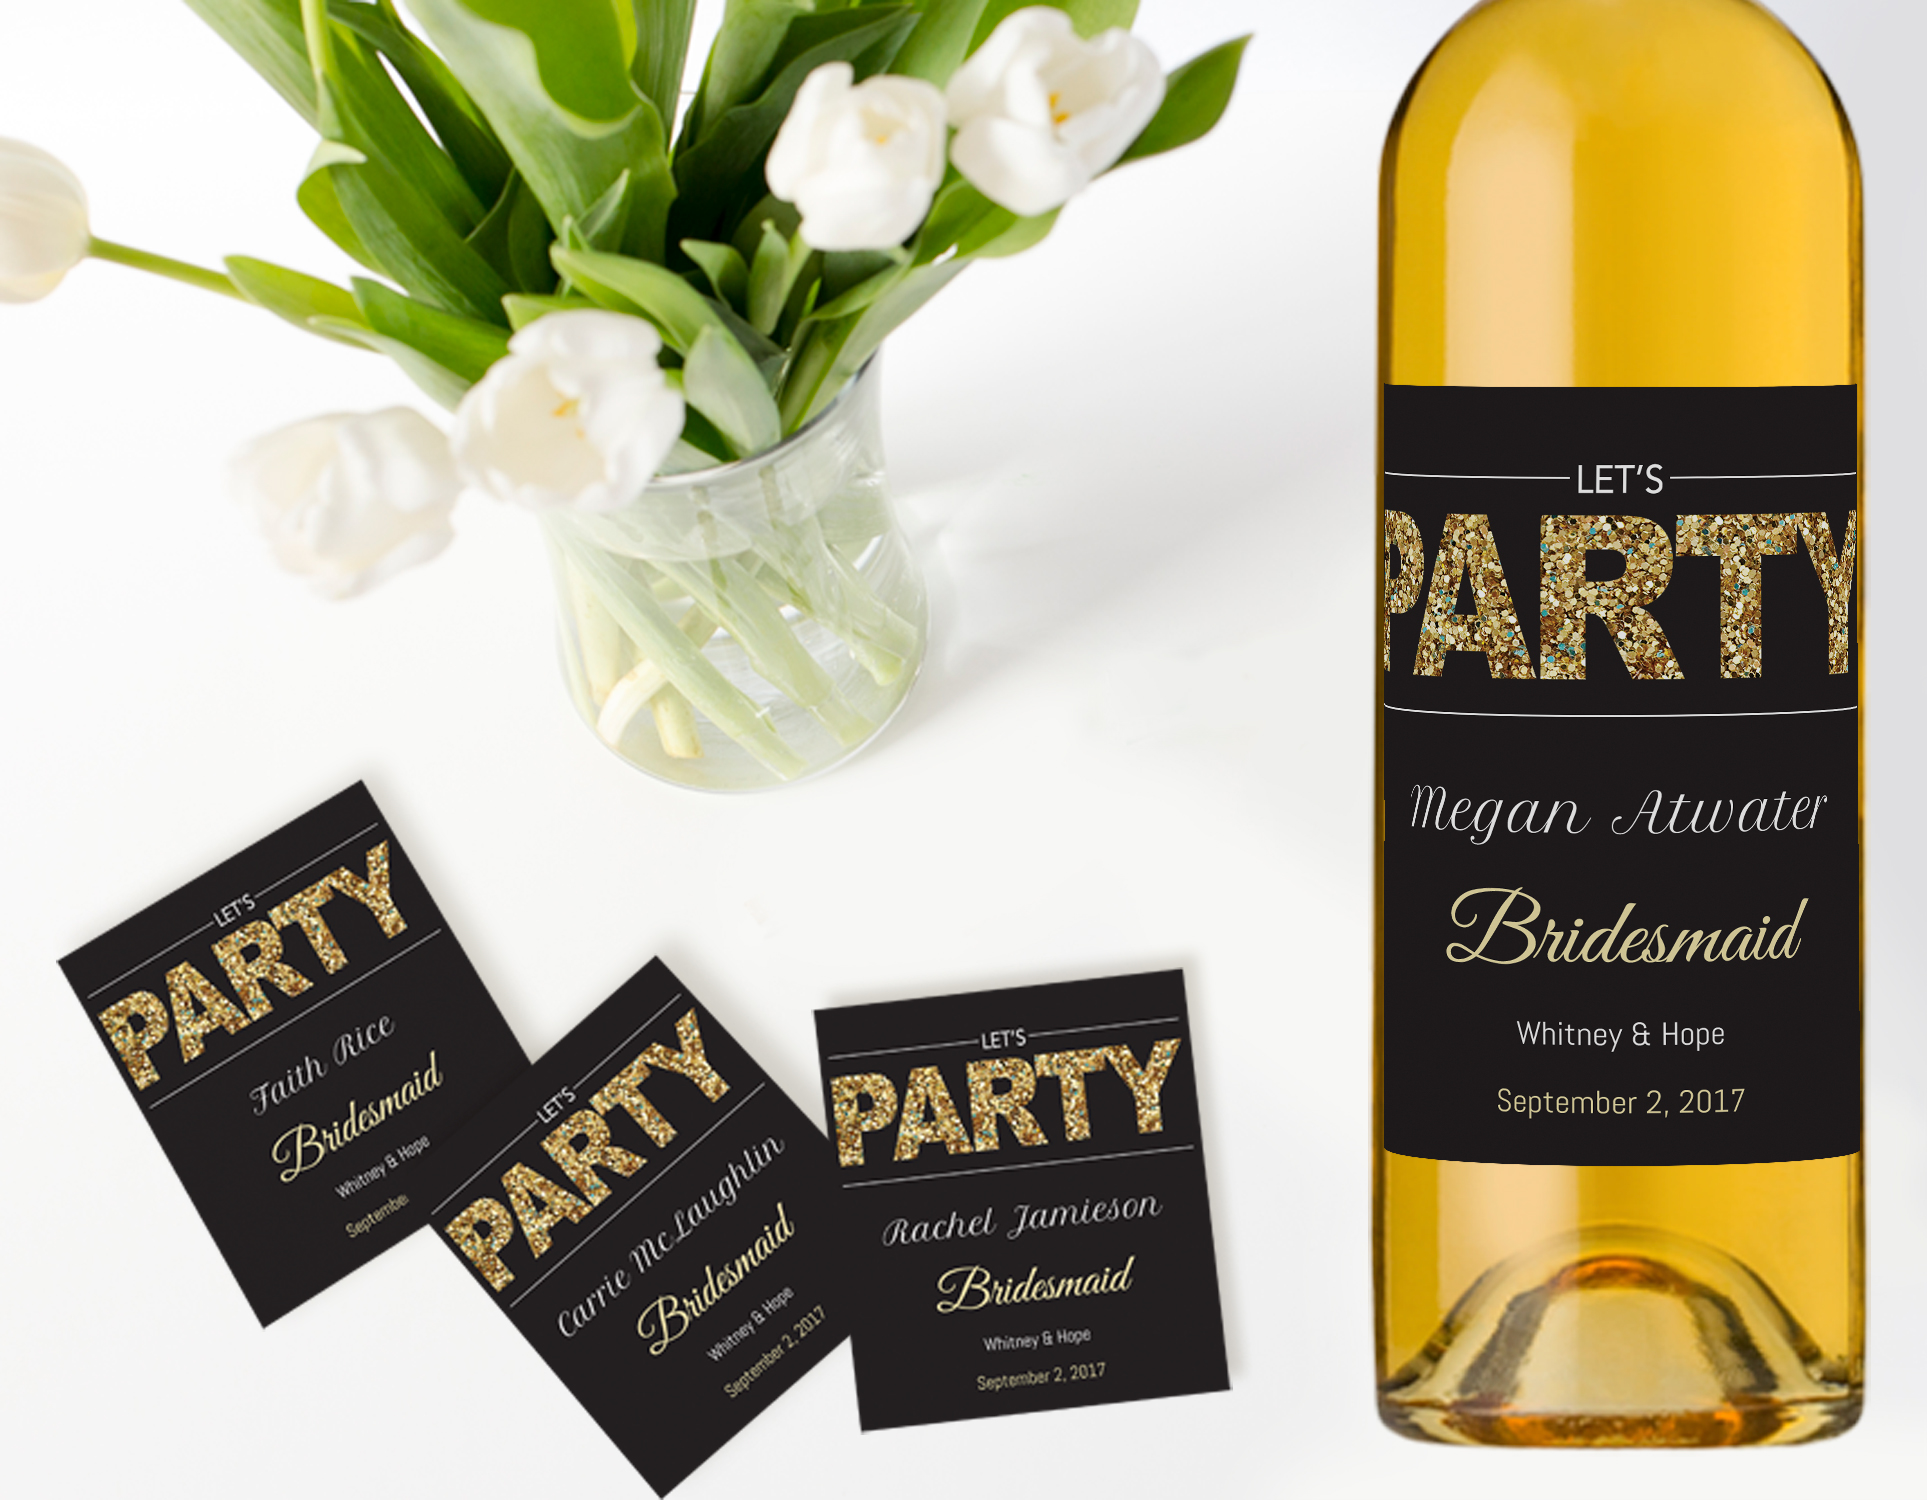 Custom wine labels for bridesmaid